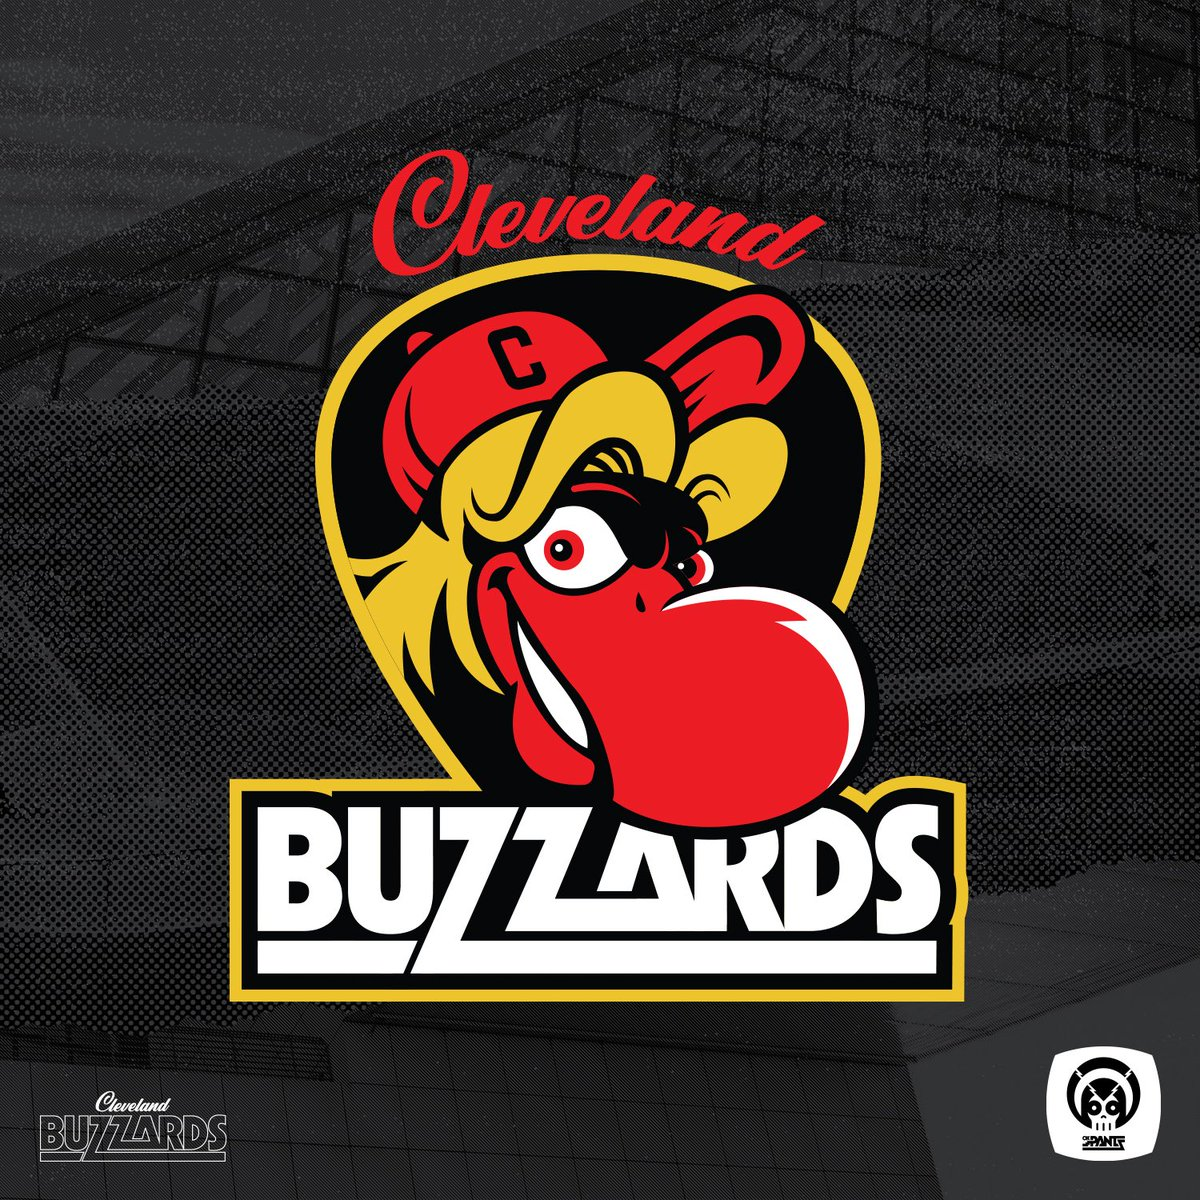 Happy early #openingday @Indians fans. I got bored and re-designed our baseball team. http://okPANTS.com/buzzards